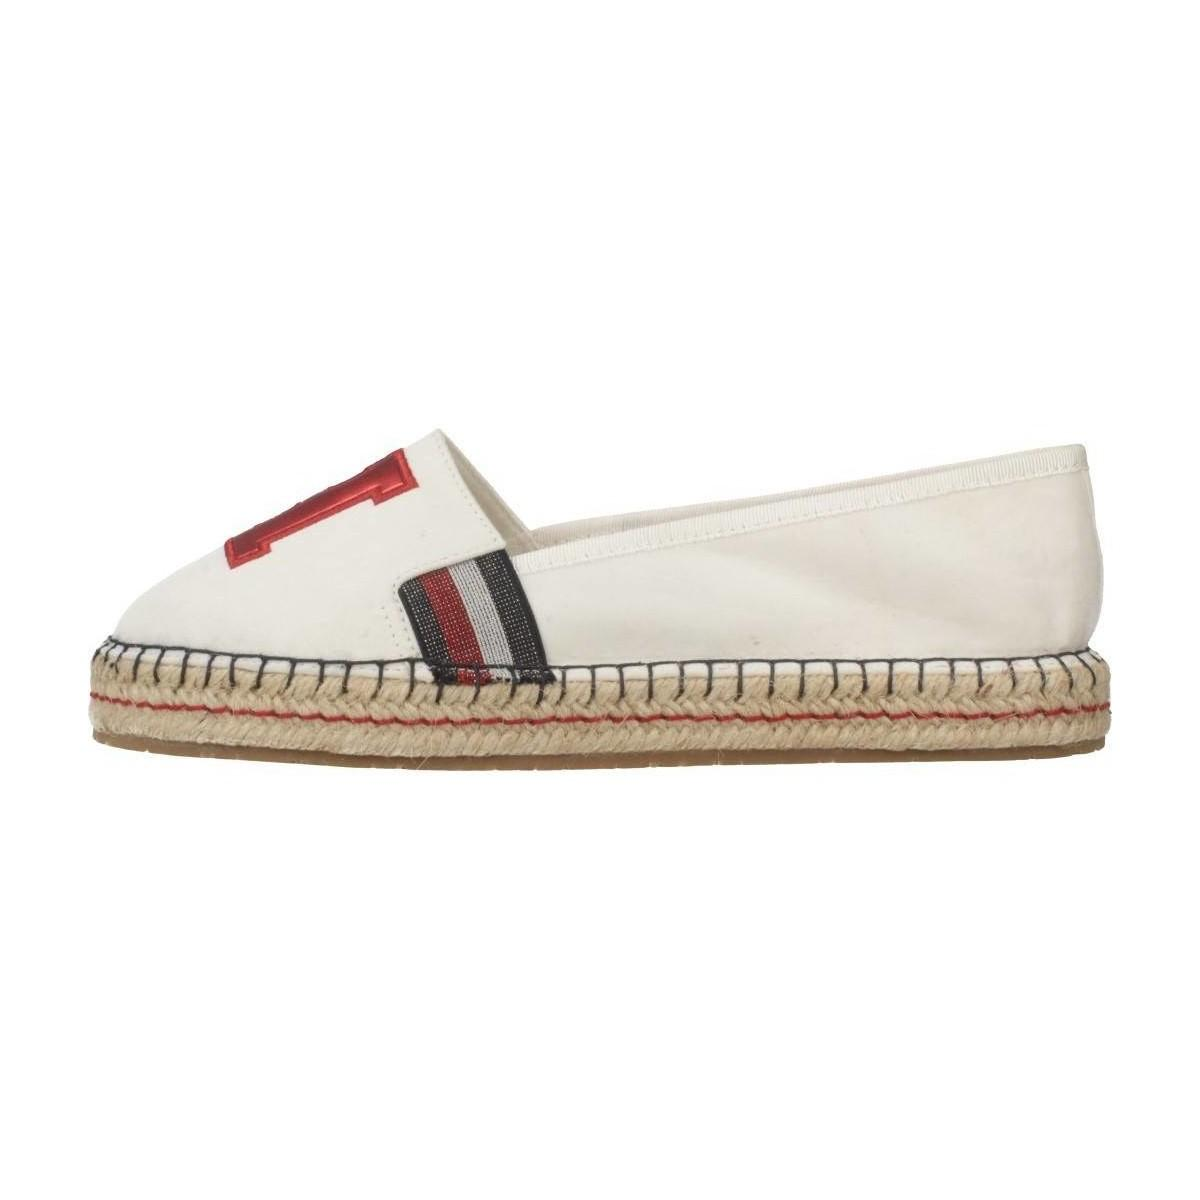 fbc14a0f517a8 Tommy Hilfiger - Fw0fw03846 Women s Espadrilles   Casual Shoes In White -  Lyst. View fullscreen